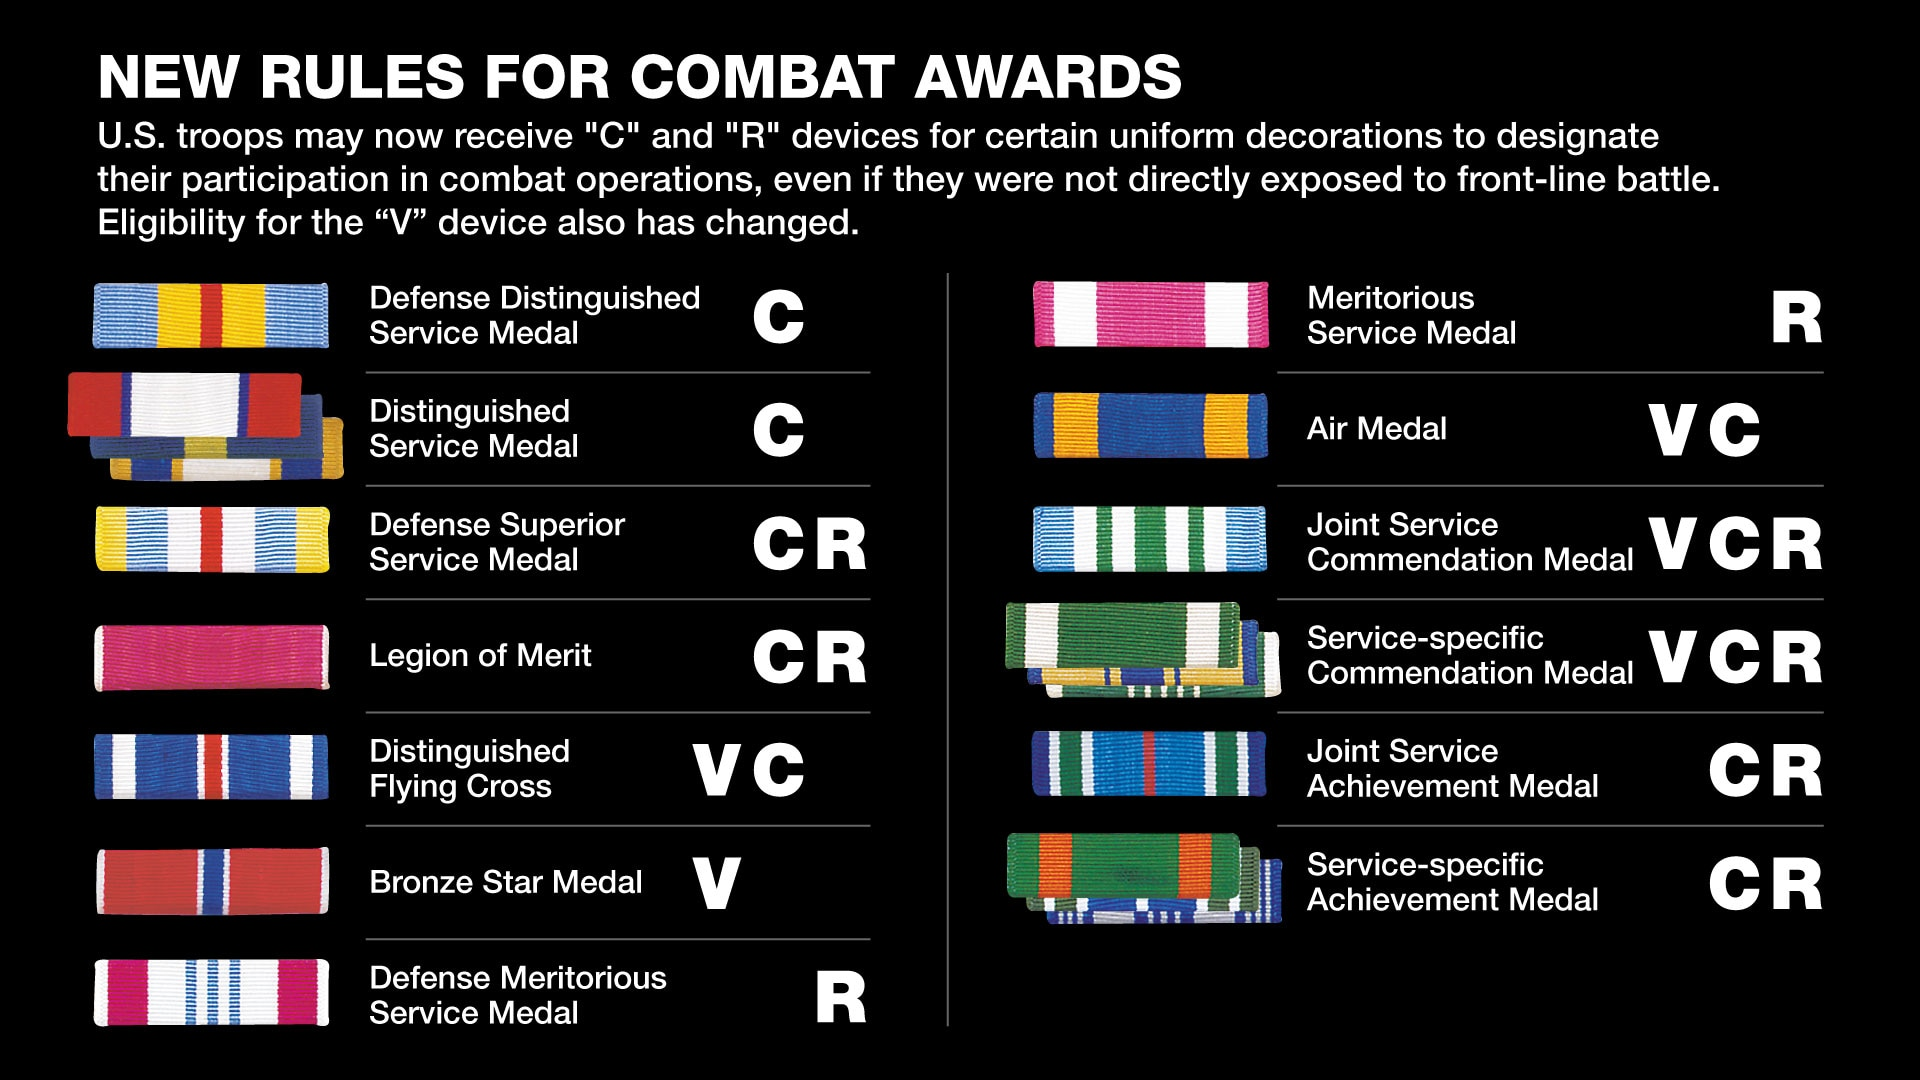 Soldiers May Be Eligible For The New 'C' Or 'R' Devices On